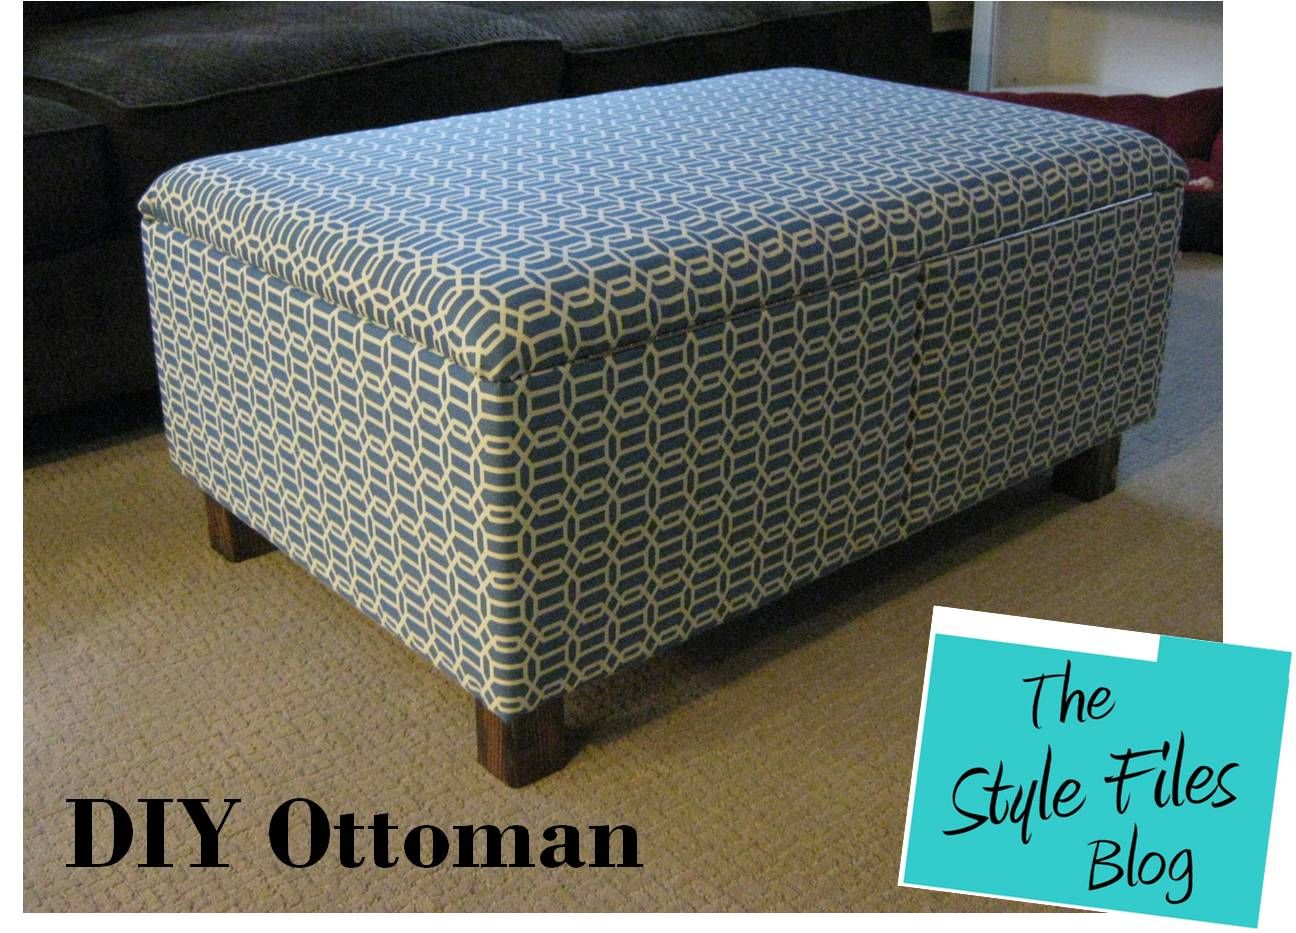 Diy Ottoman Instructions The Style Files Blog At Www